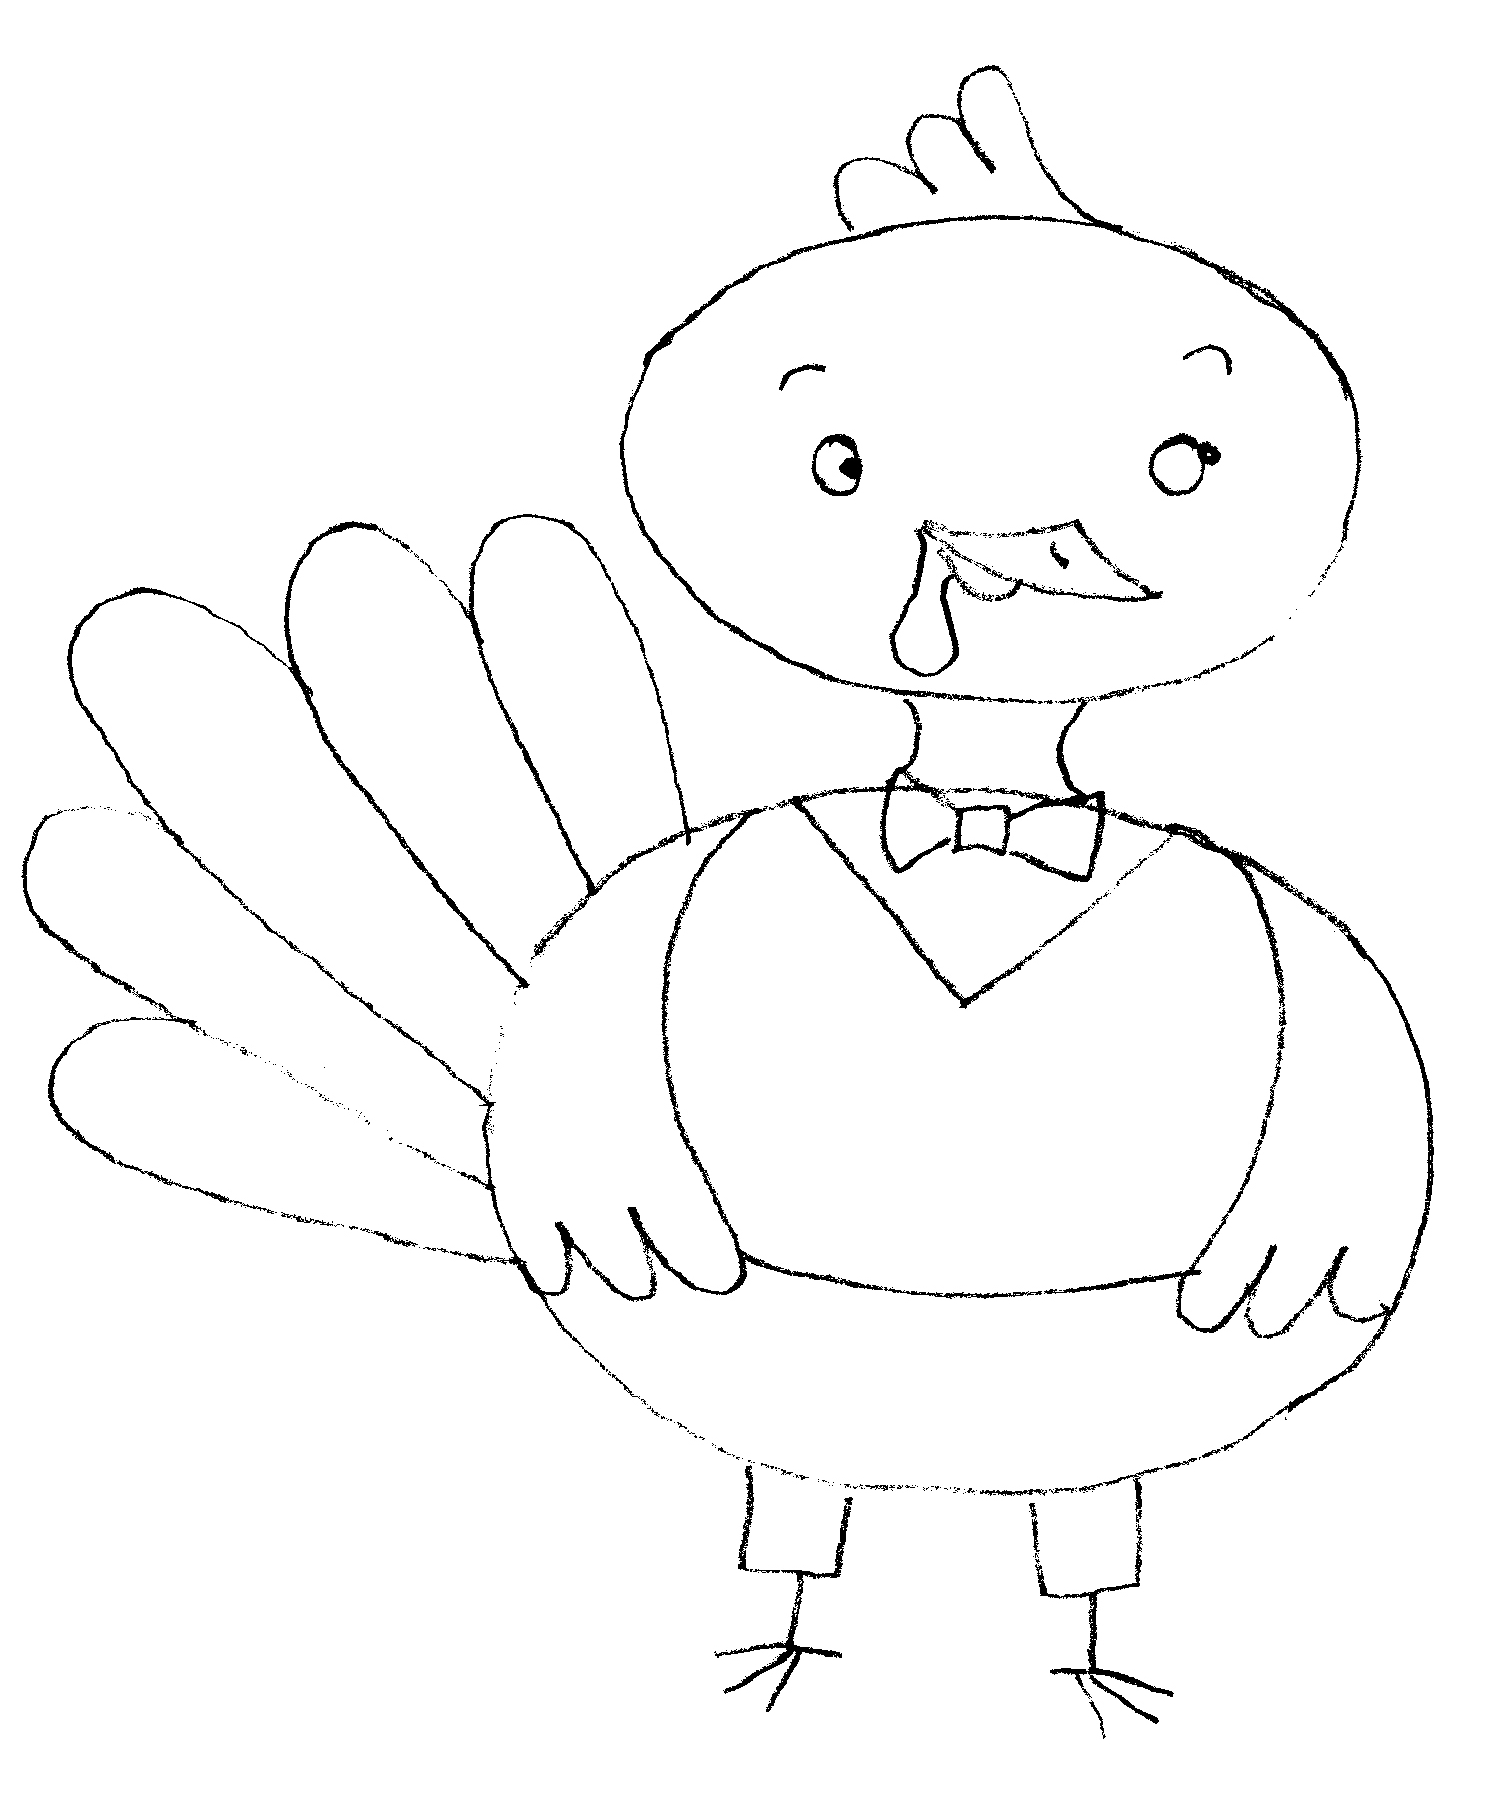 1500x1800 How To Draw A Turkey